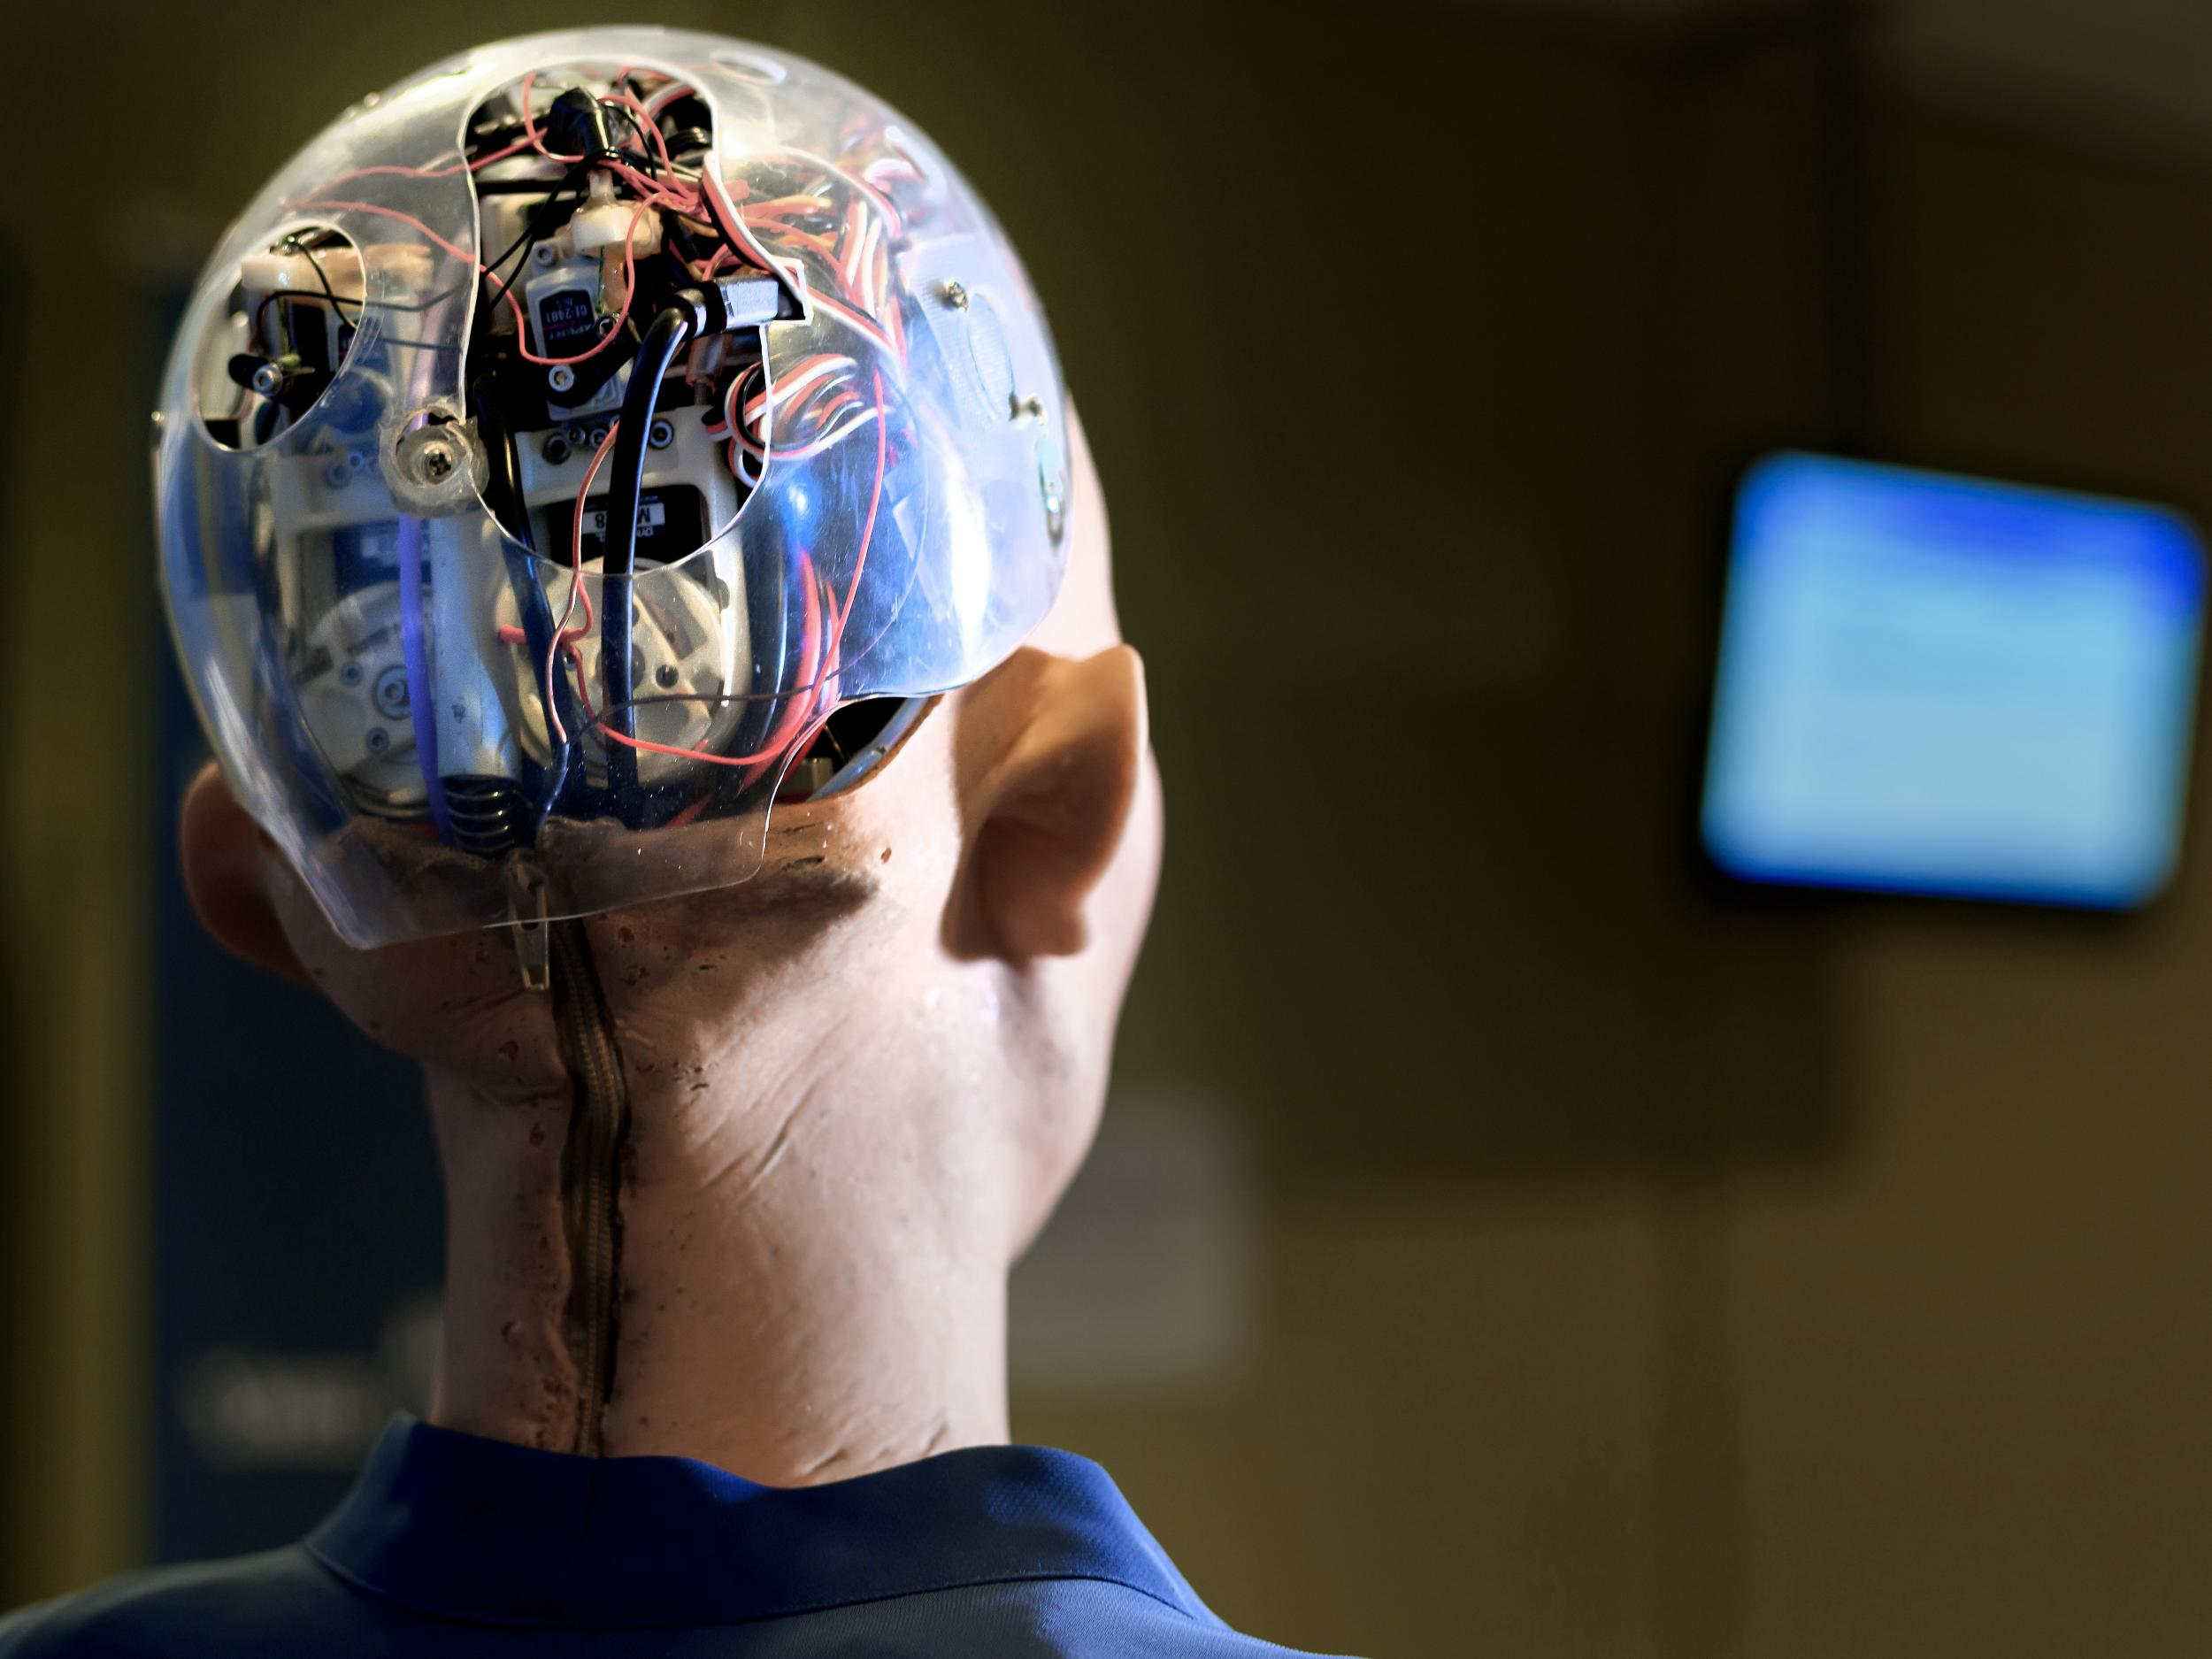 Ethics of AI: Should sentient robots have the same rights as humans?